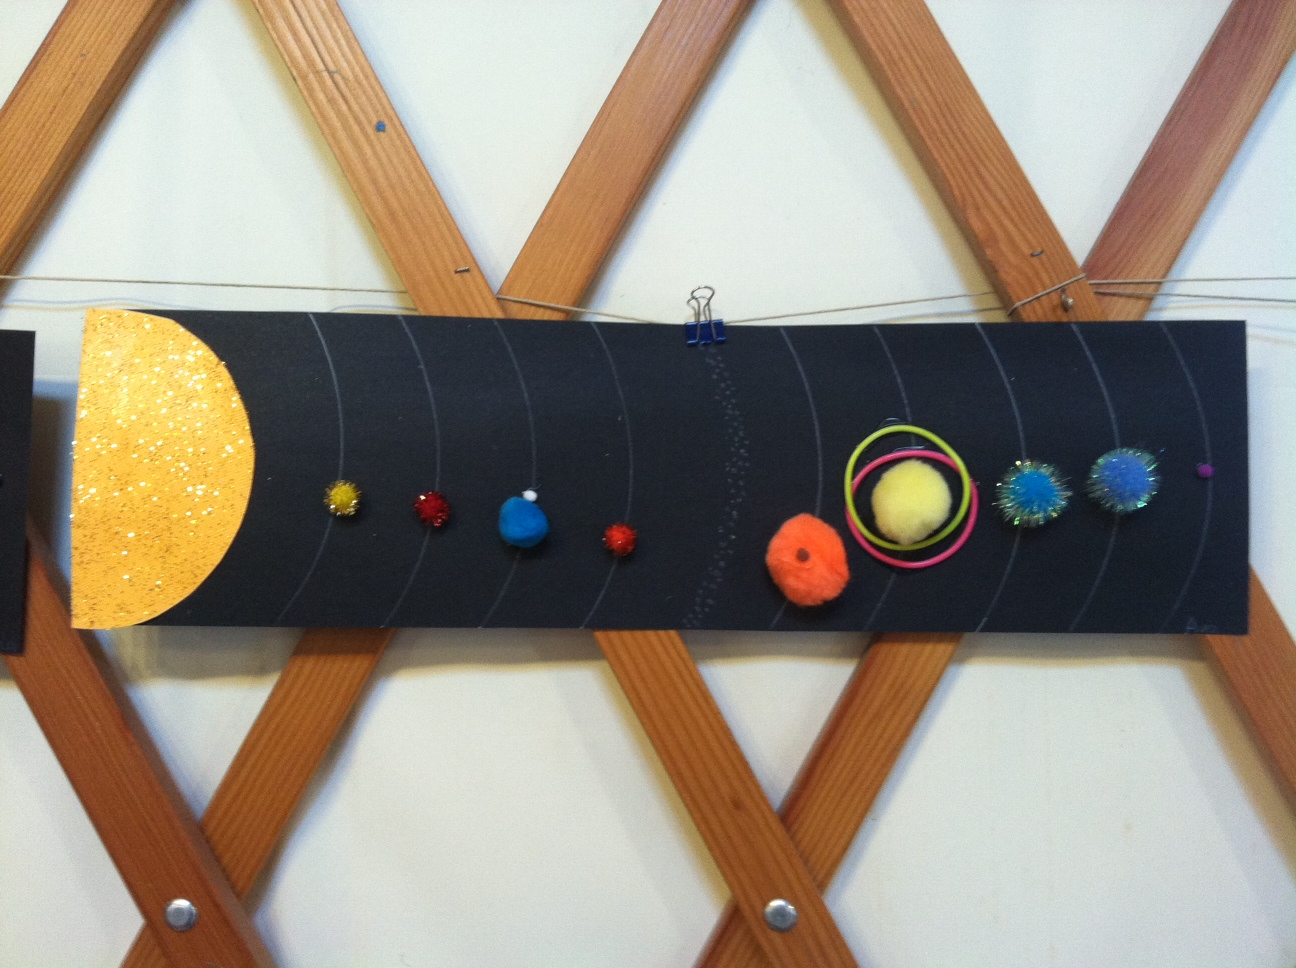 solar system with asteroid belt projects - photo #13